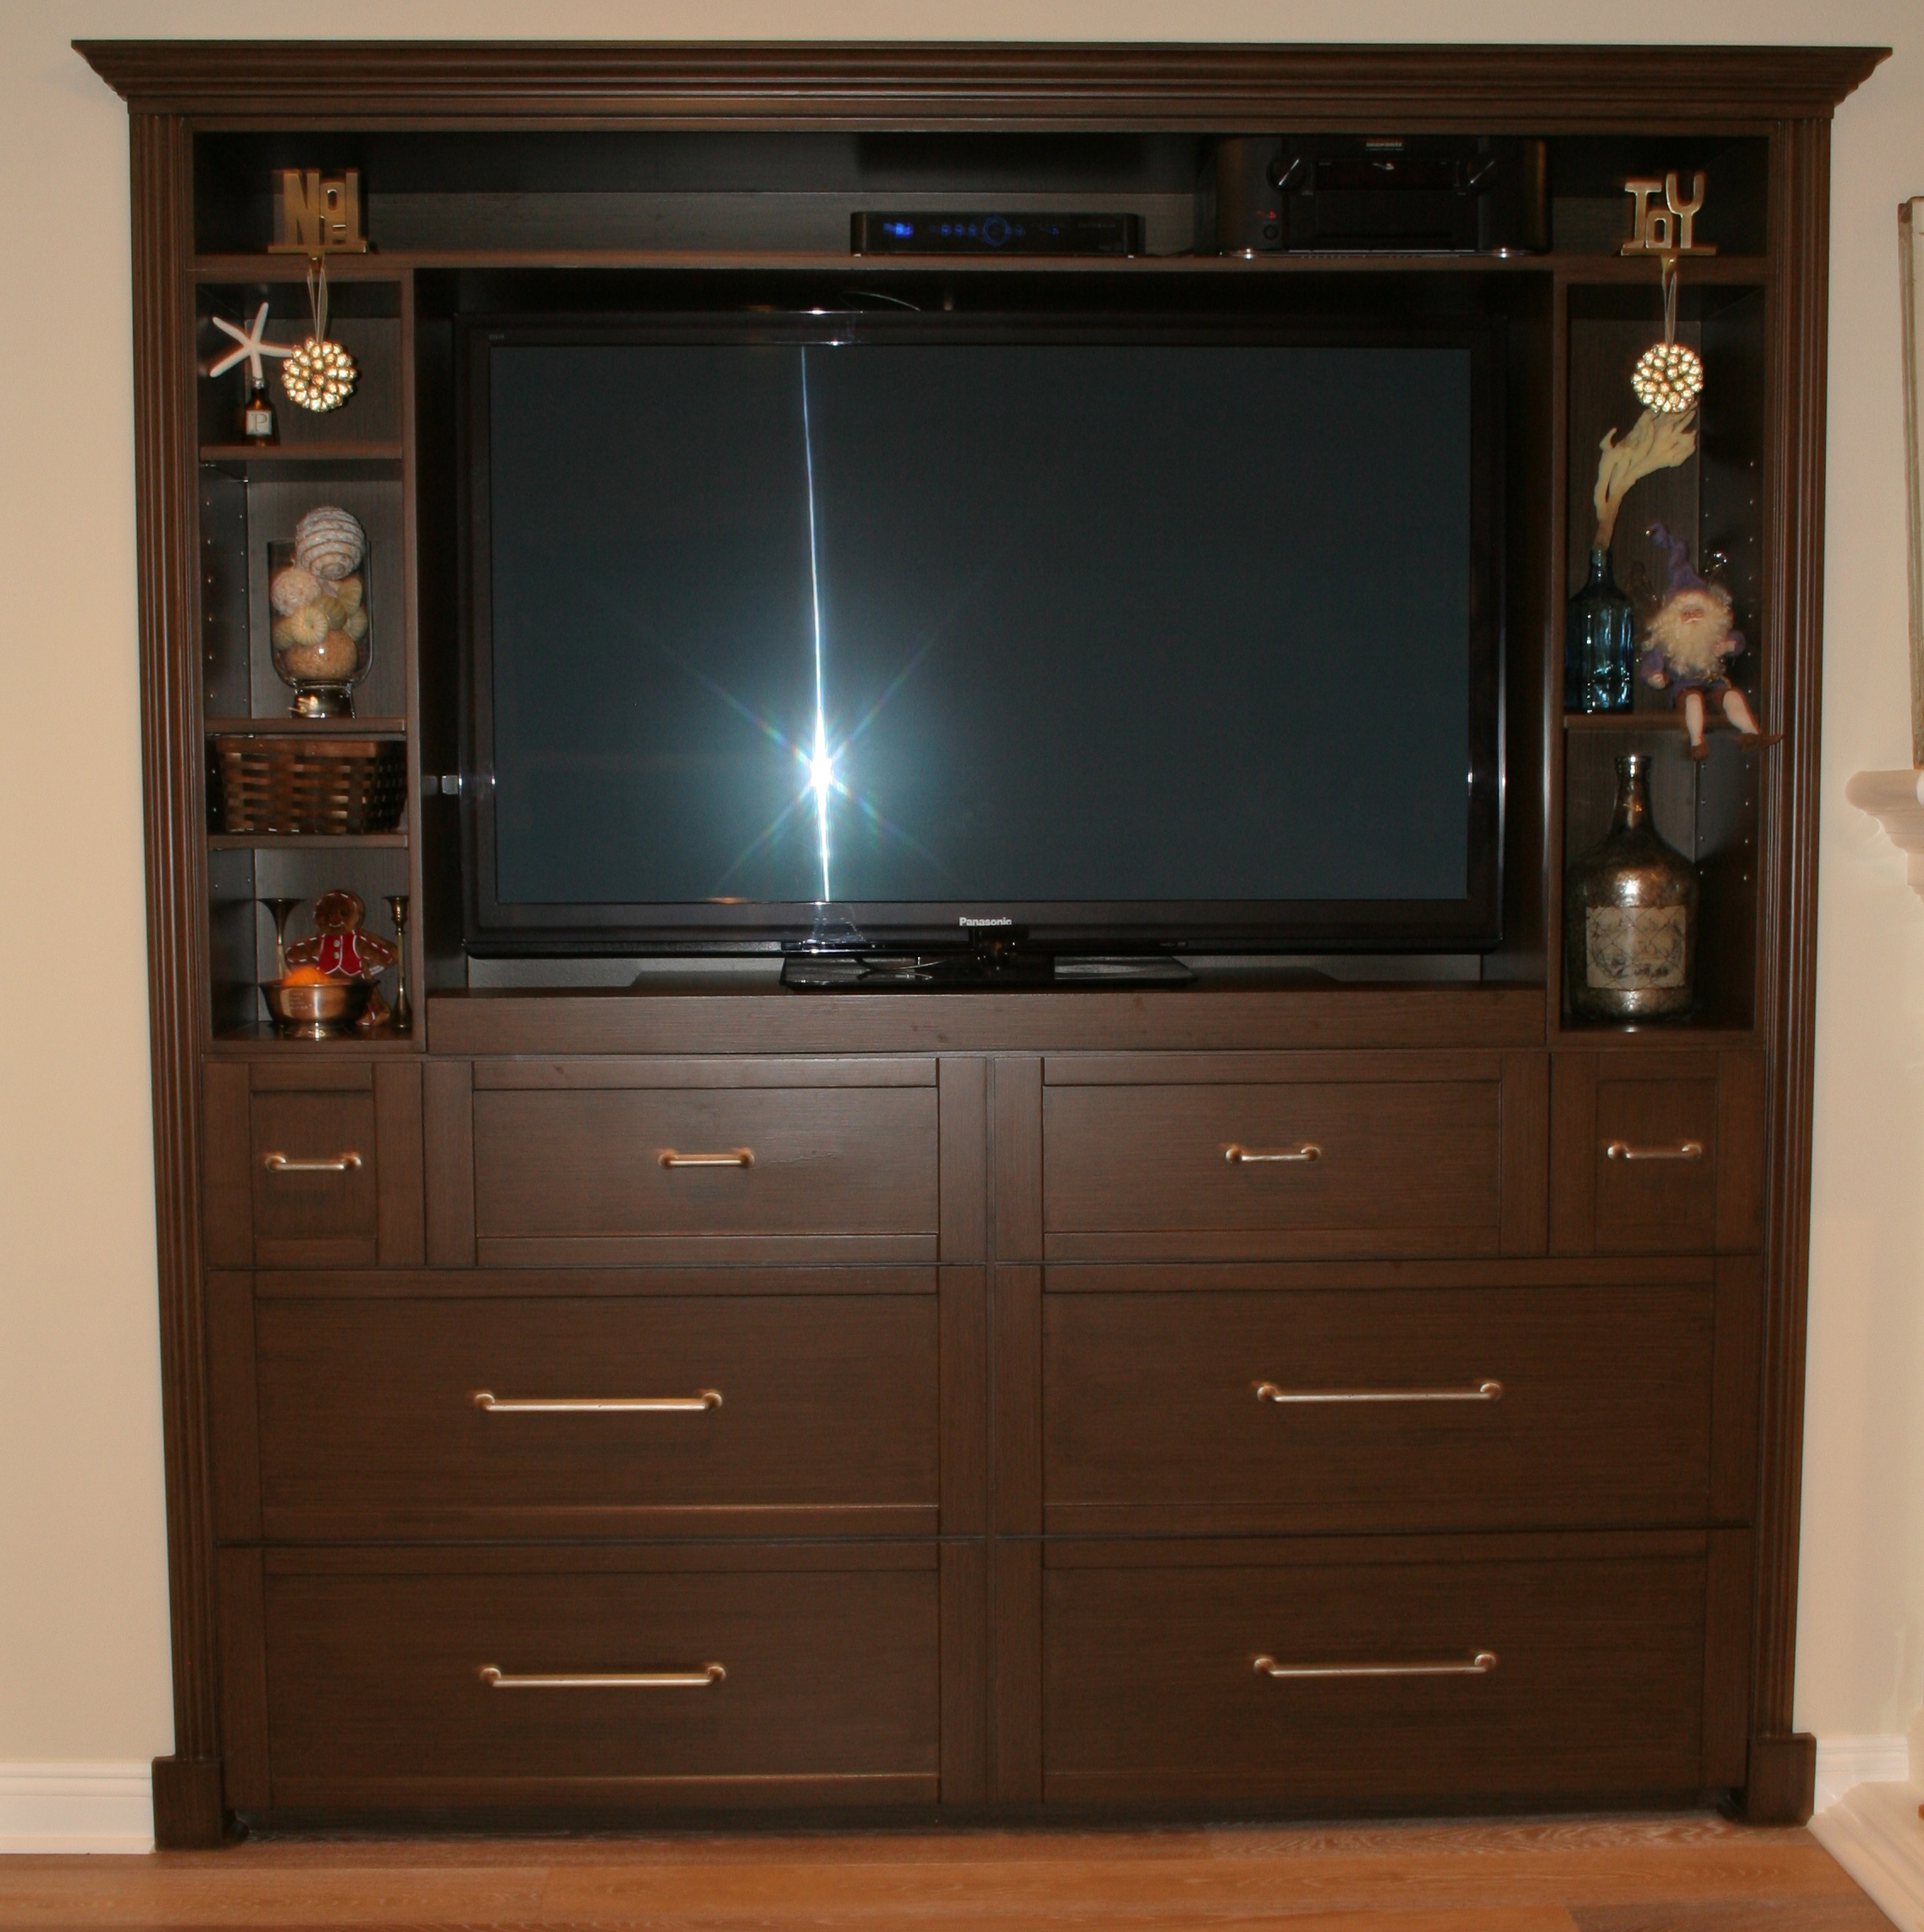 a built-in entertainment center on steroids